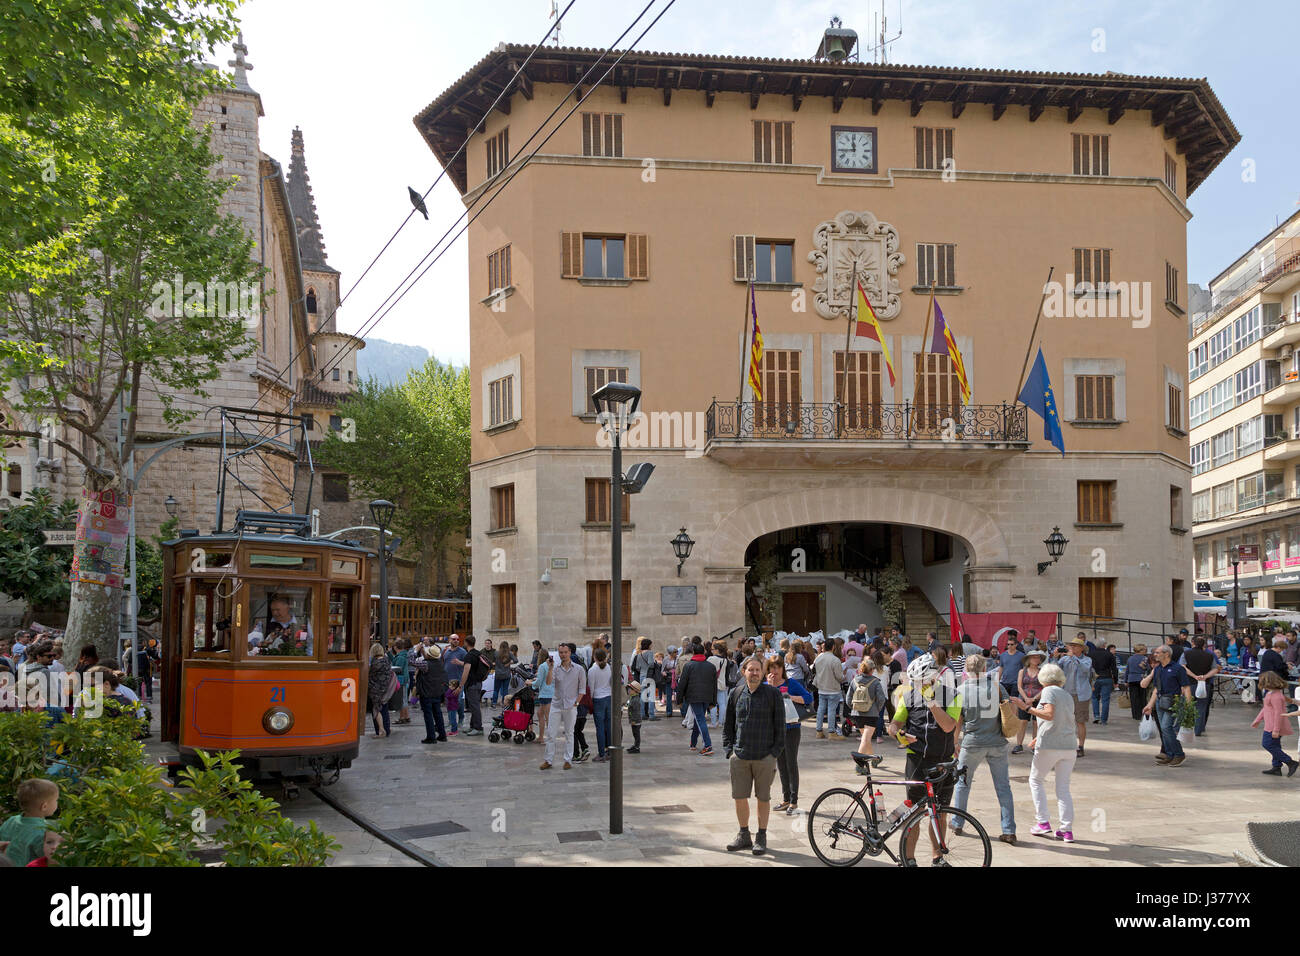 tramway in front of the town hall of Sóller, Mallorca, Spain - Stock Image